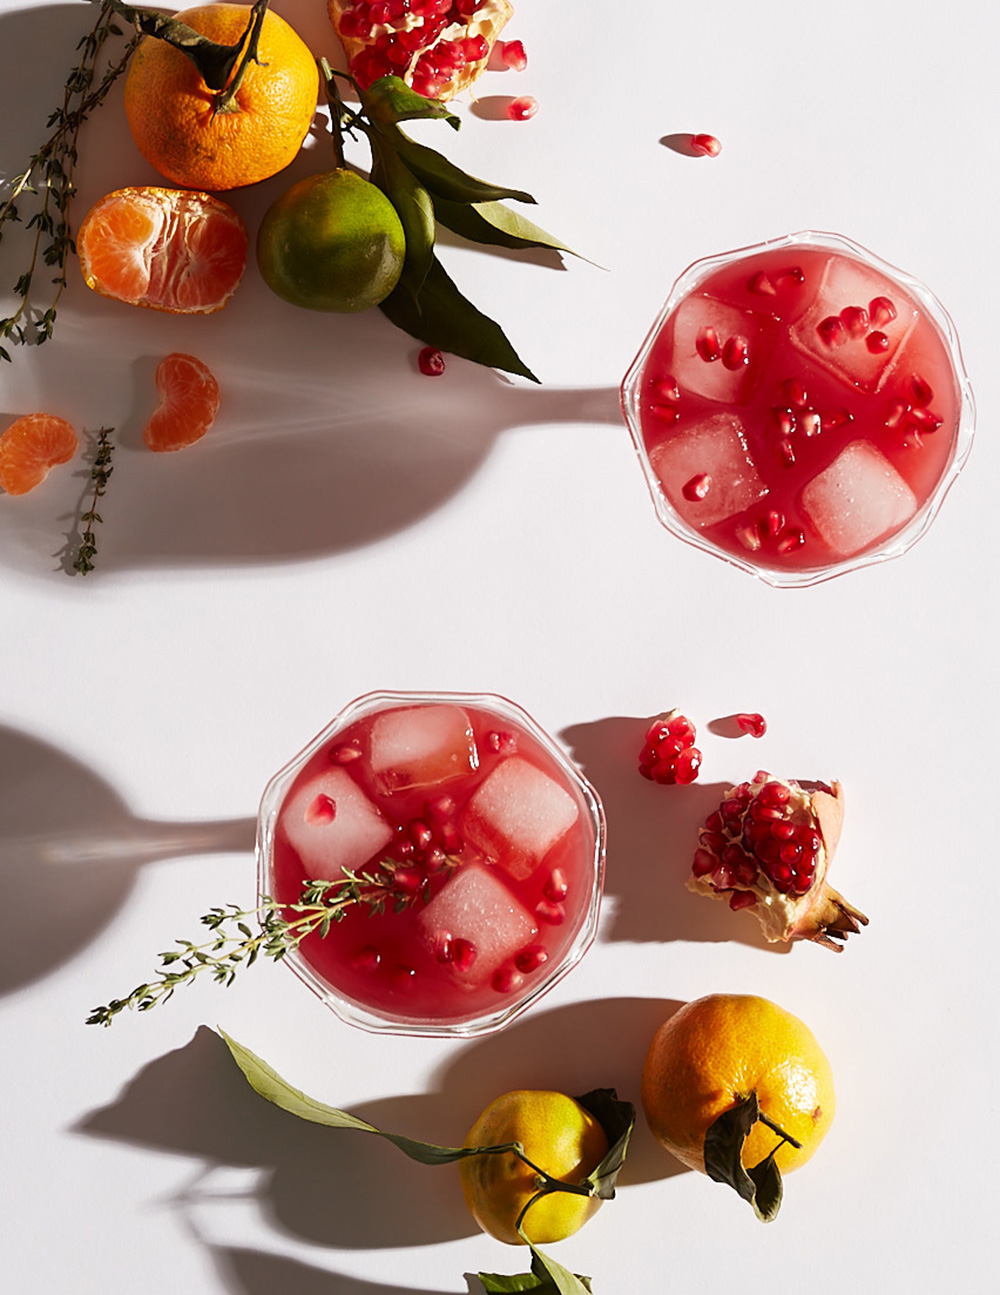 pommegranate-clementine-cocktails-drinks-stylist-prop-styling-lifestylestylist-artdirector-lauren-becker.jpg